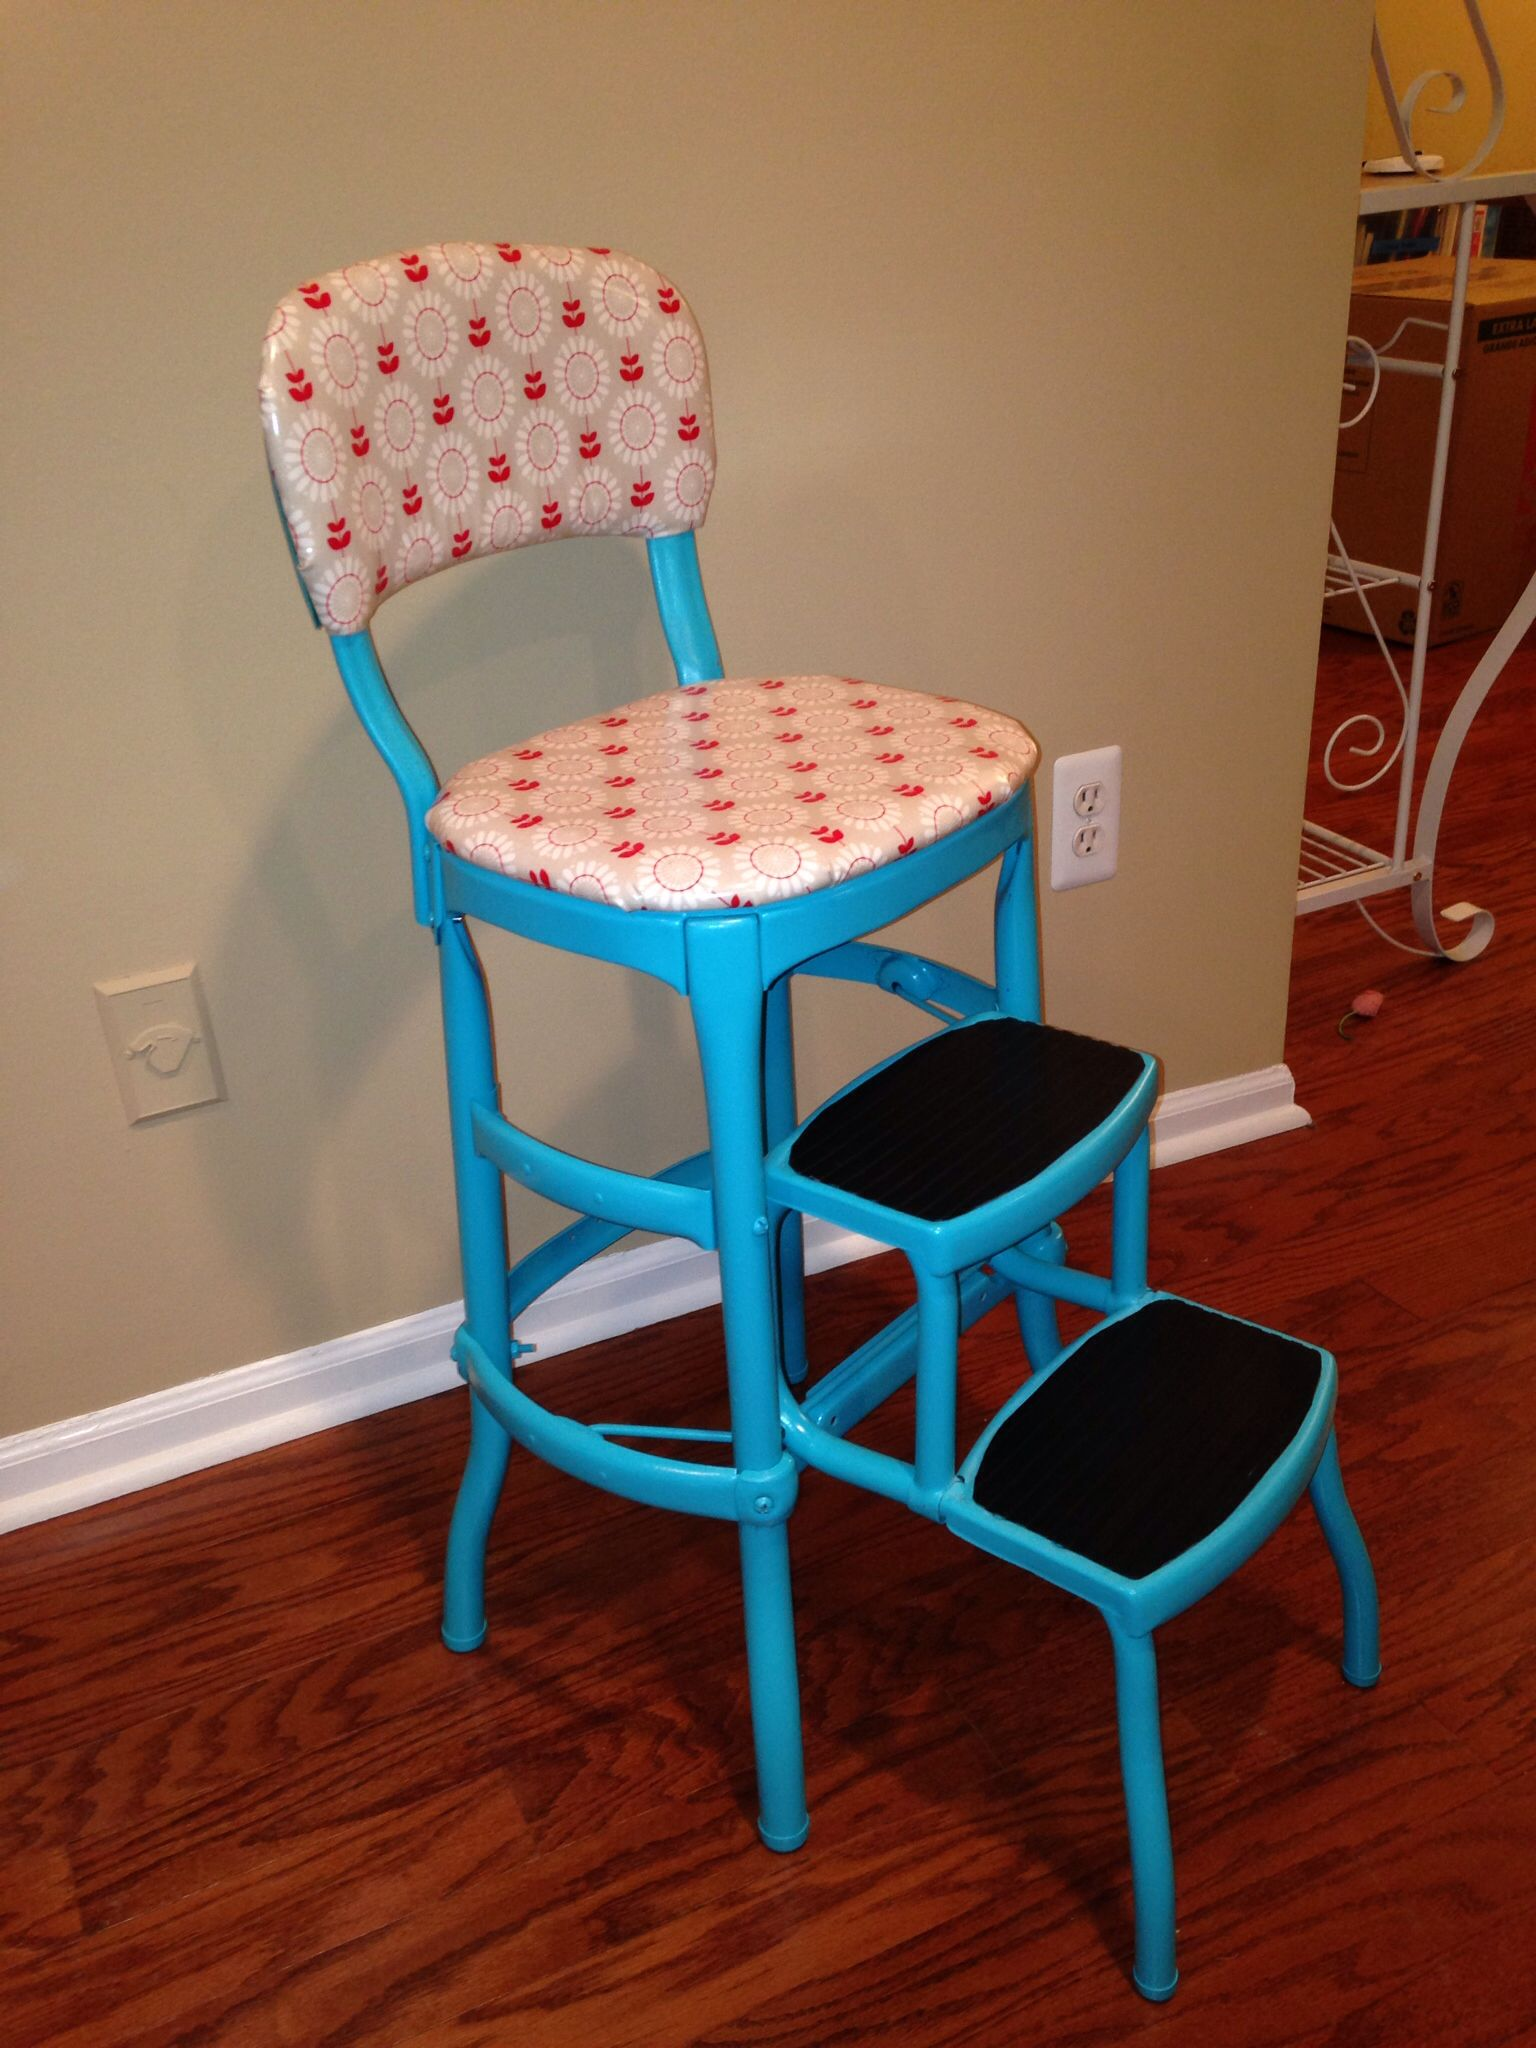 old fashioned kitchen chair step stool stand alone pantry cosco redo my projects pinterest